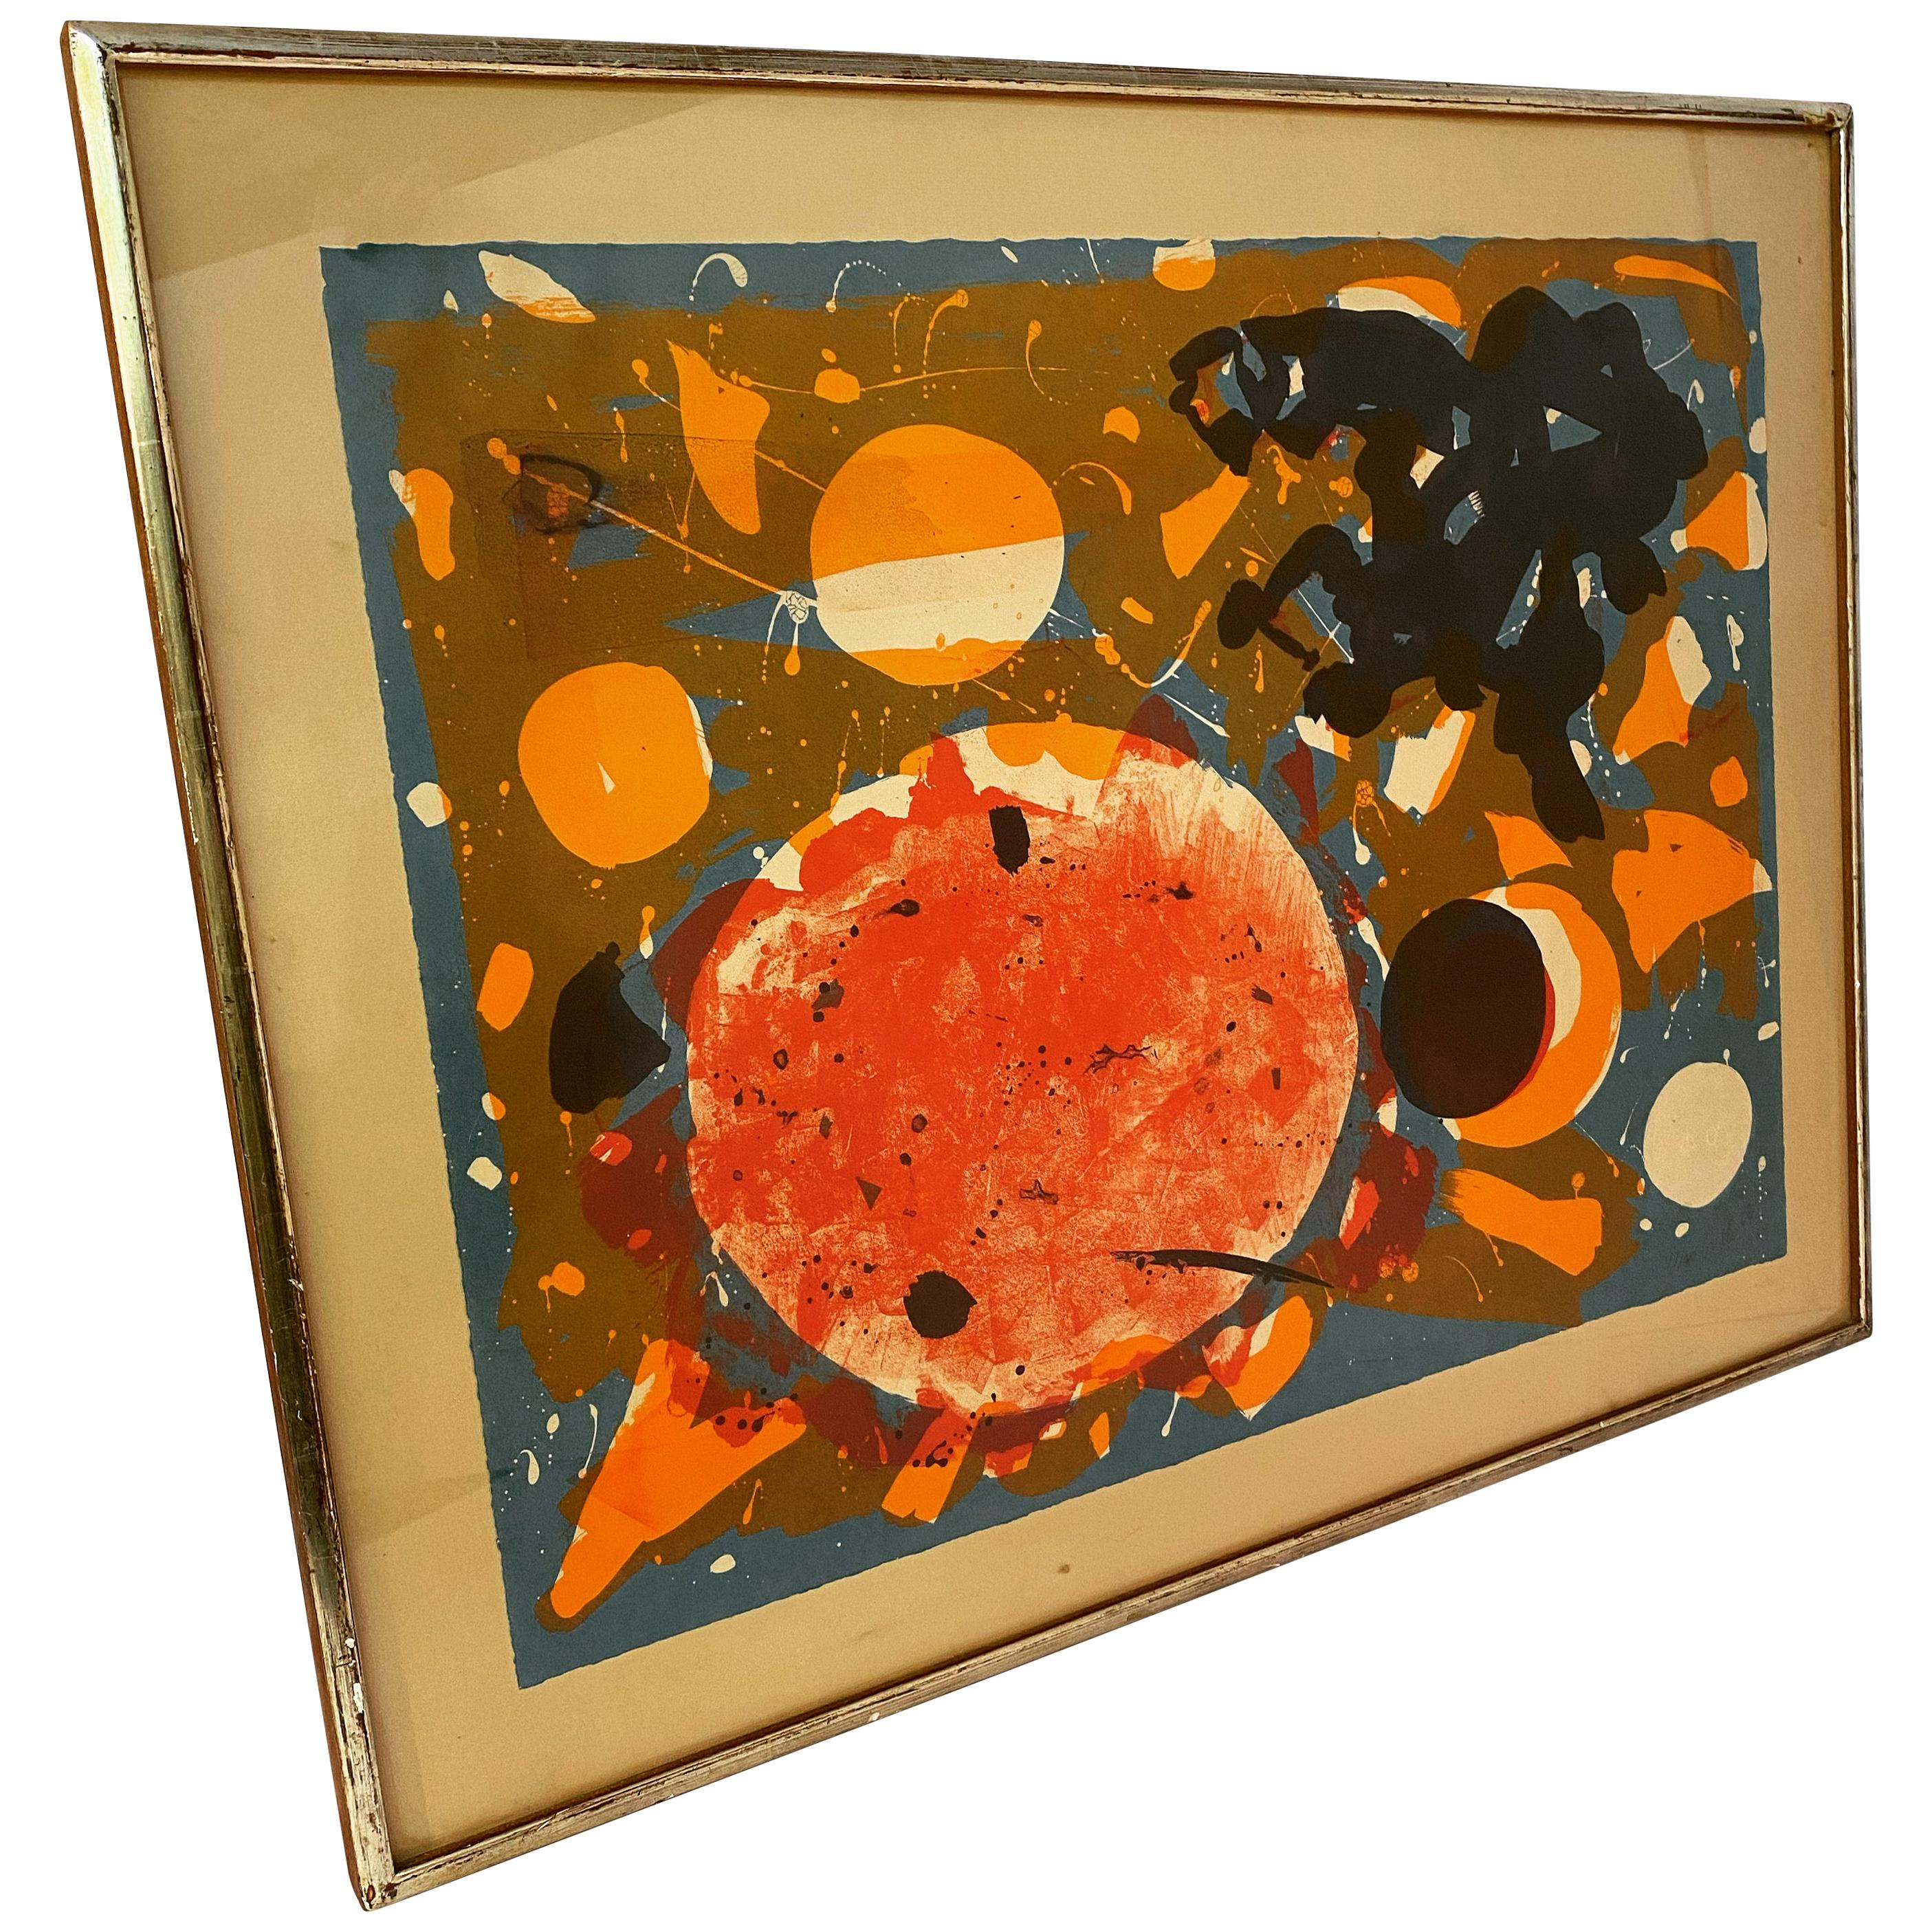 John Grillo 1964 Abstract Expressionist Lithograph